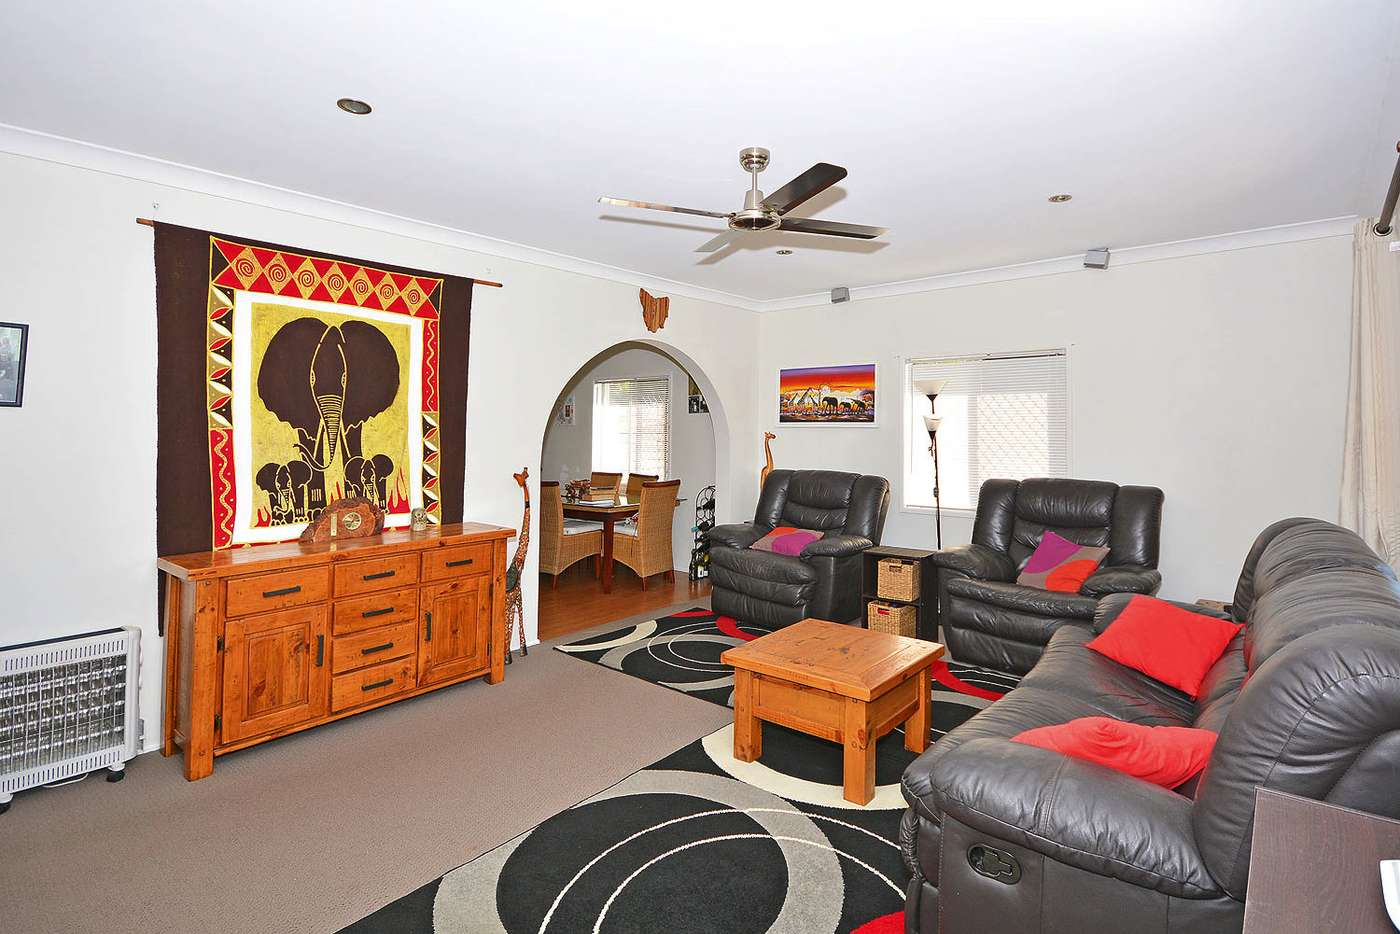 Seventh view of Homely house listing, 26 Snapper St, Kawungan QLD 4655